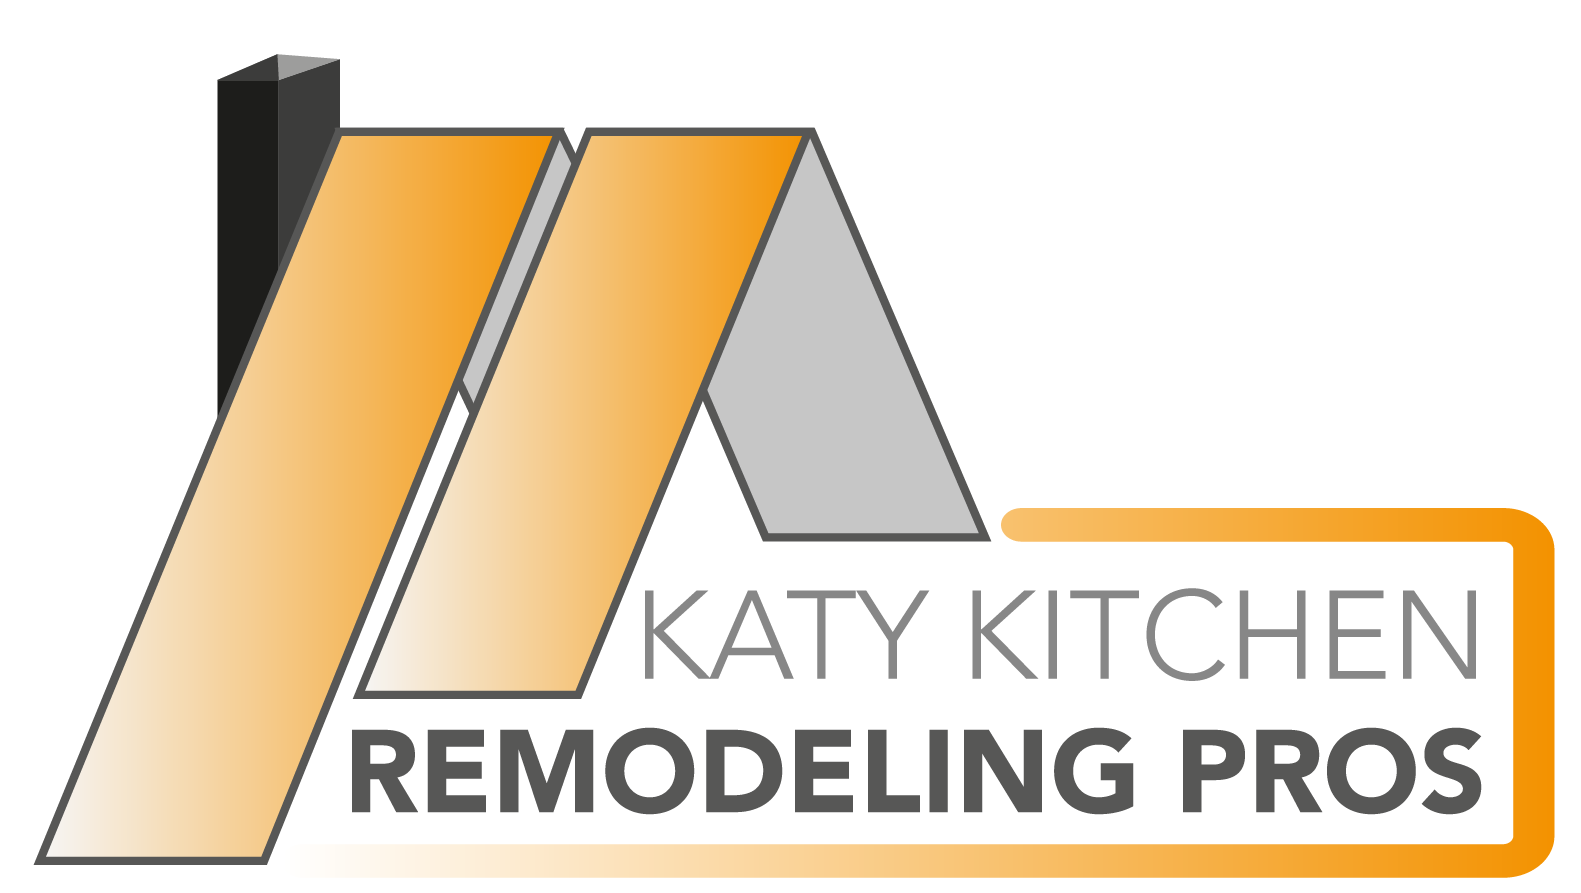 Katy Kitchen Remodeling Pros